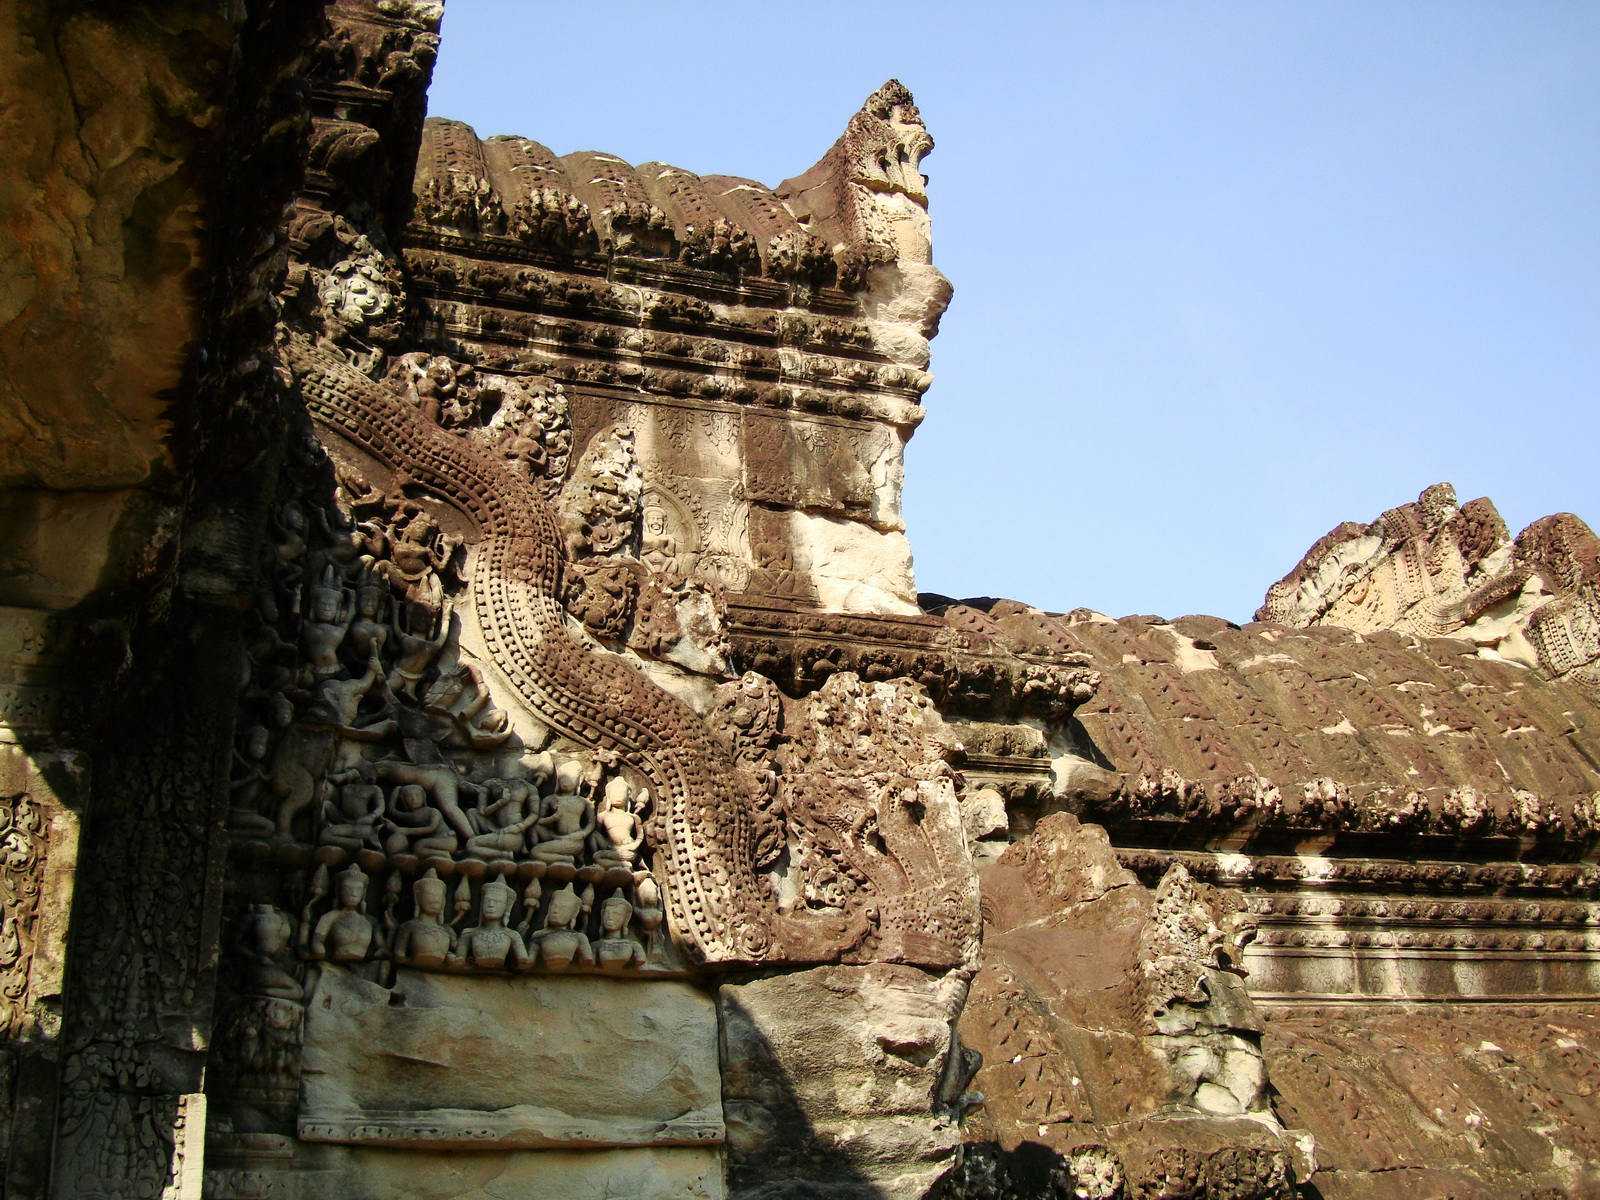 Angkor Wat Khmer architecture eastern gallery entrance 09